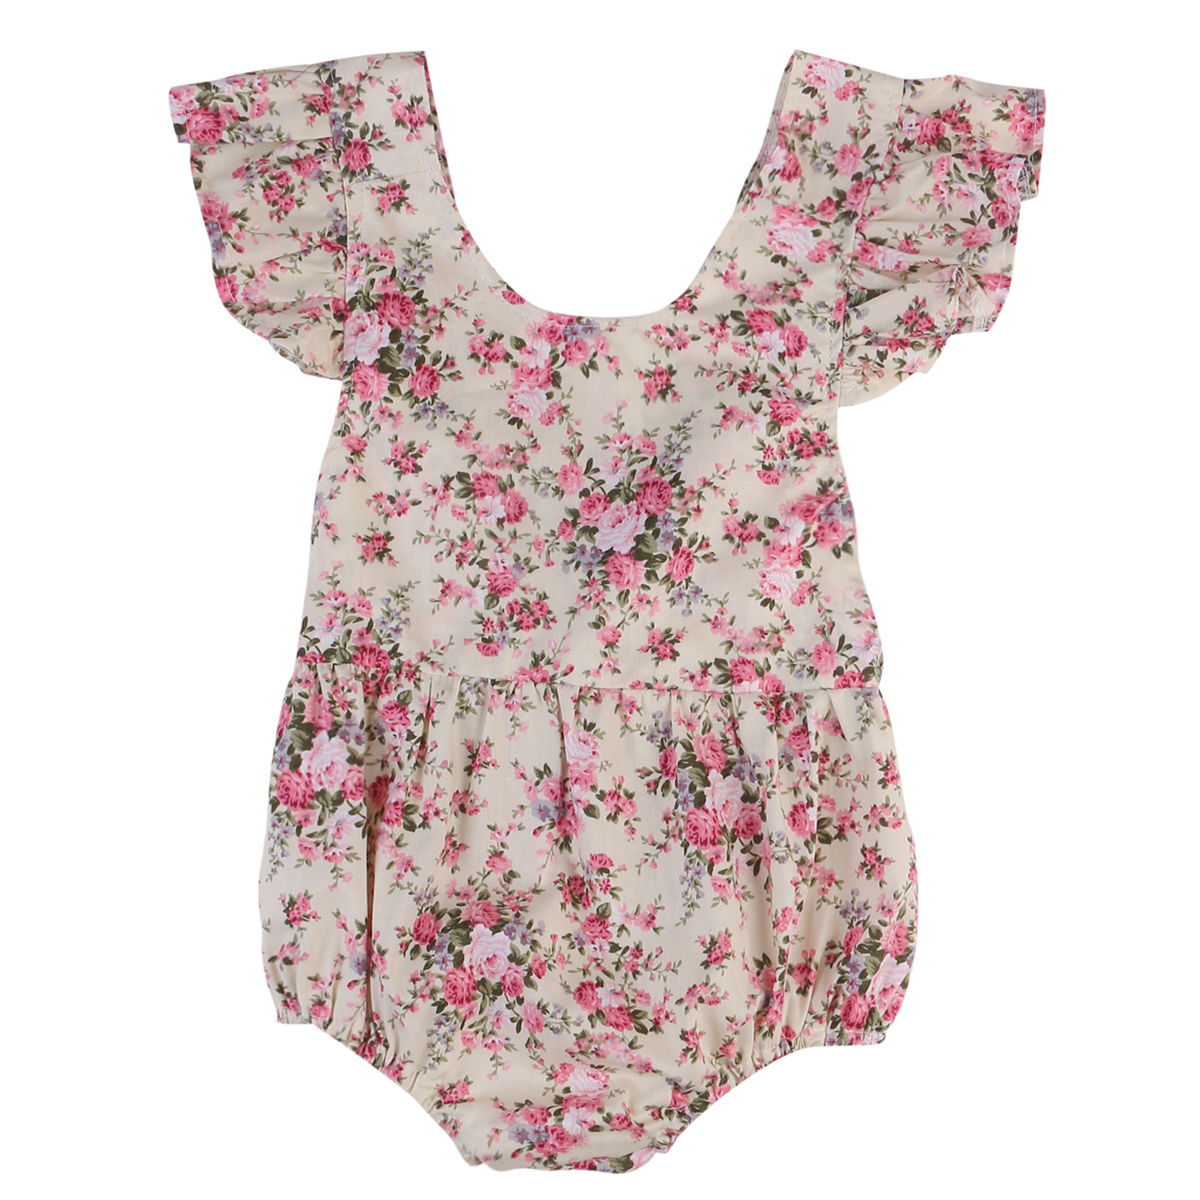 Lovely Newborn Toddler Baby Girls Sweet Cute Floral Romper Summer Holiday Party Jumpsuit Outfit Clothes